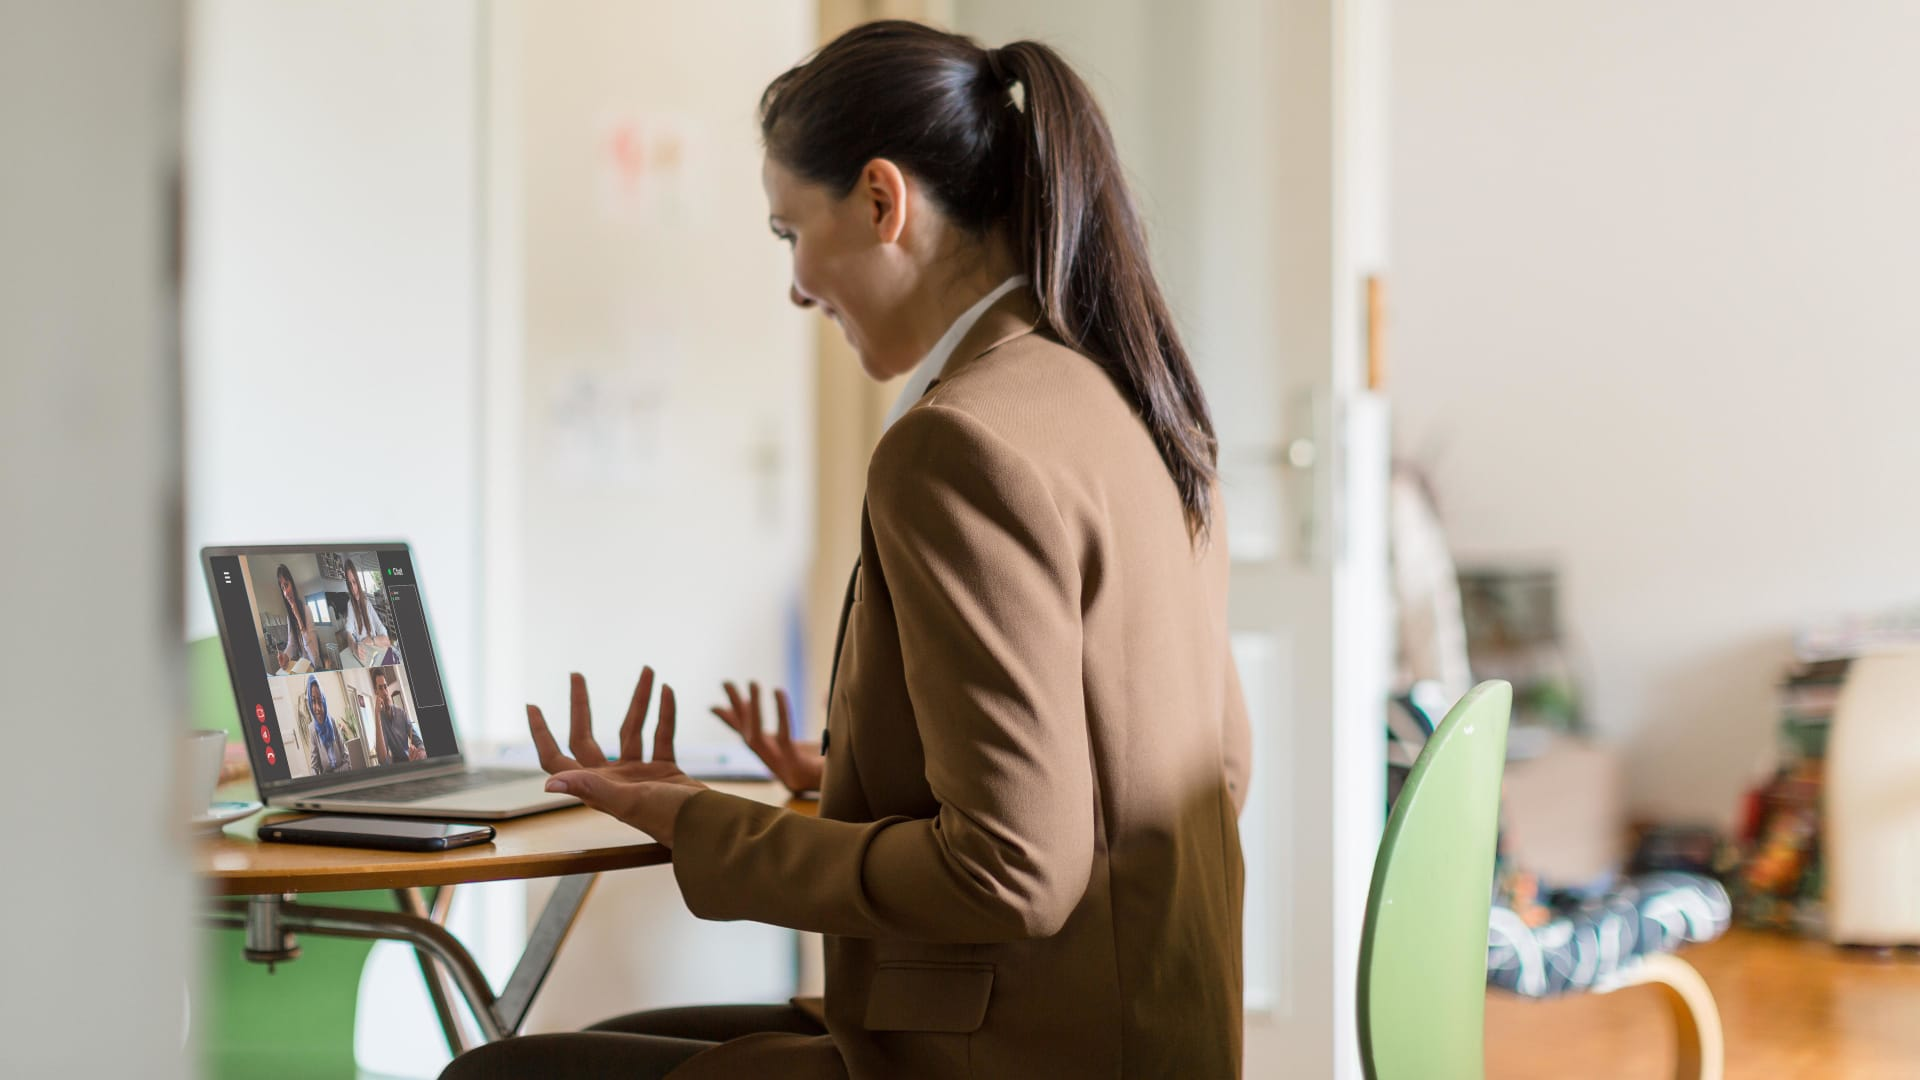 Monster's Future of Work Survey: 3 Areas Employers Need to Focus on This Year